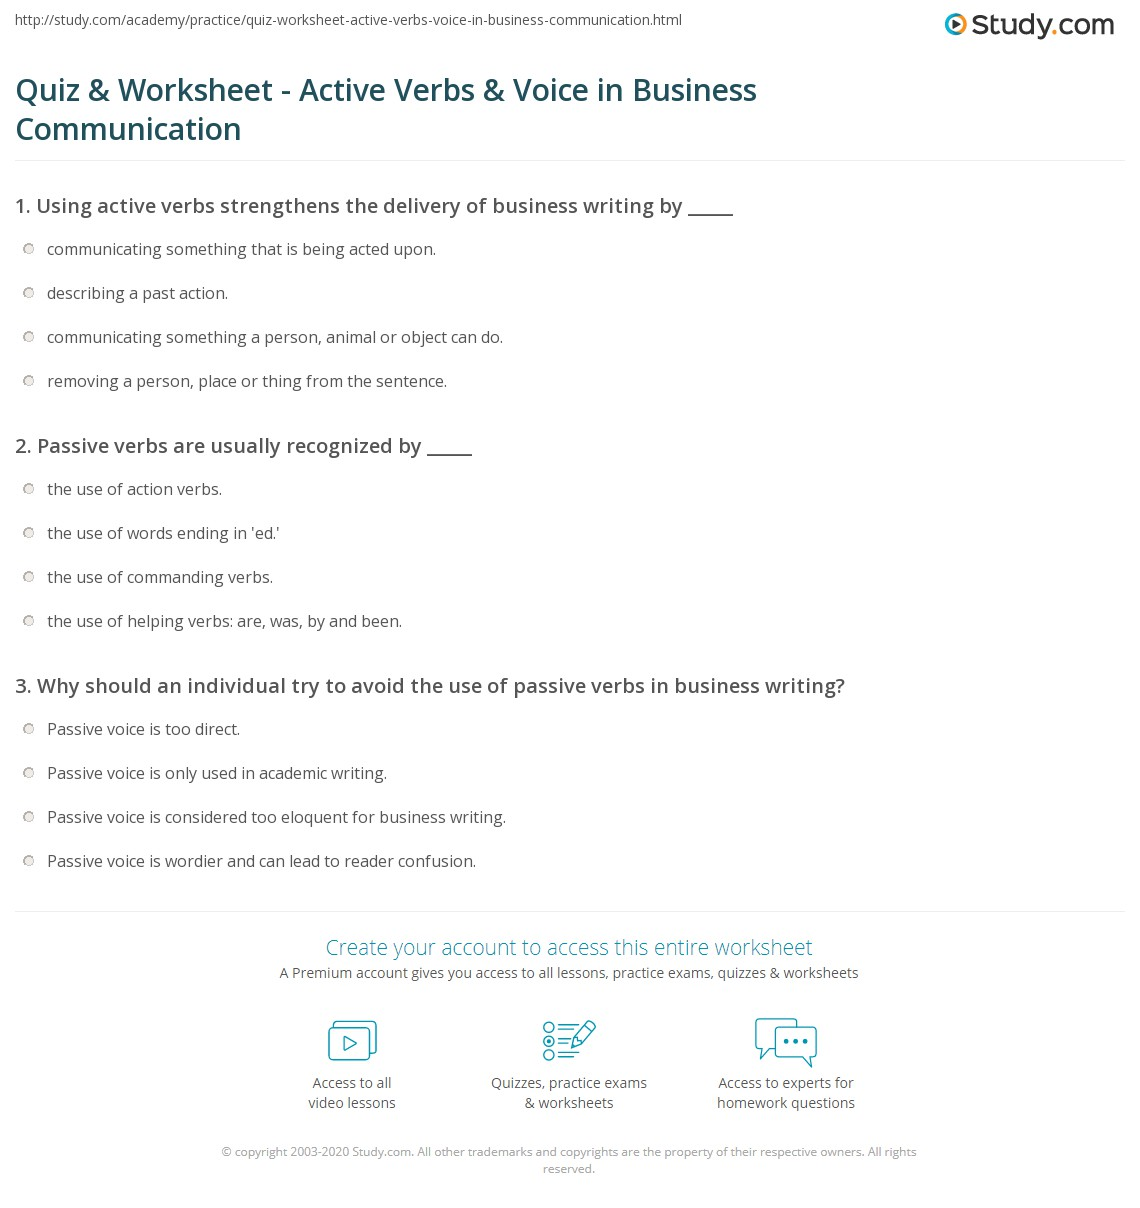 Print Using Active Verbs And Active Voice In Business Communication  Worksheet  Active Verbs